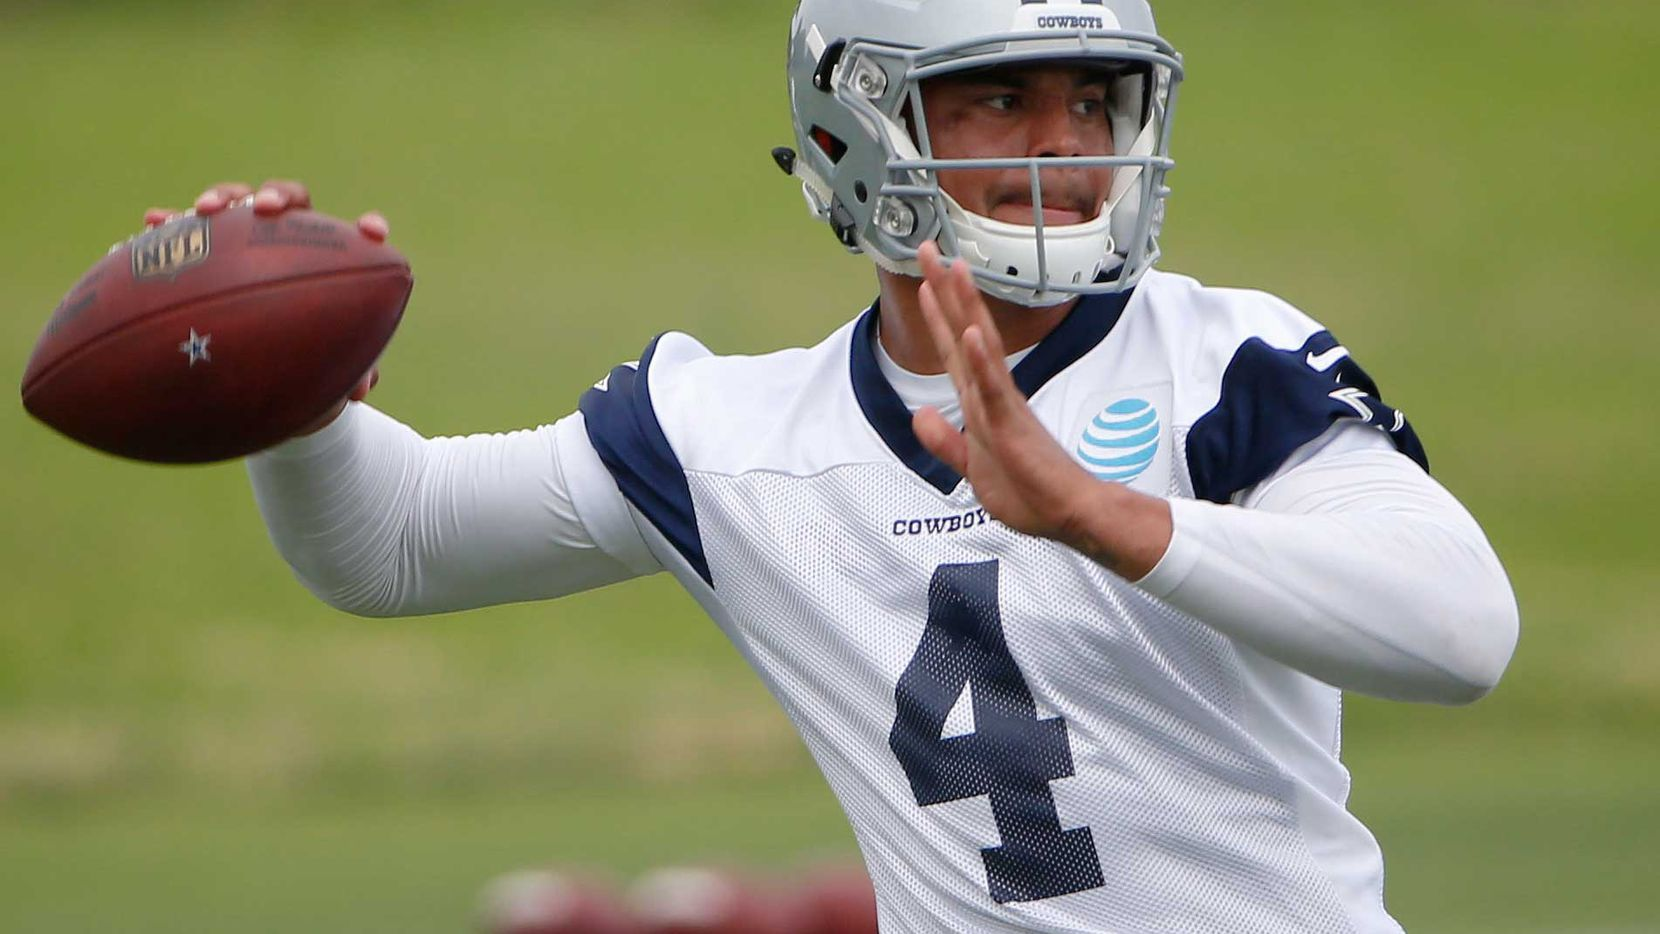 Dallas Cowboys quarterback Dak Prescott (4) throws the ball during organized team activities at Cowboys headquarters in Irving, Texas Wednesday May 25, 2016. (Andy Jacobsohn/The Dallas Morning News)